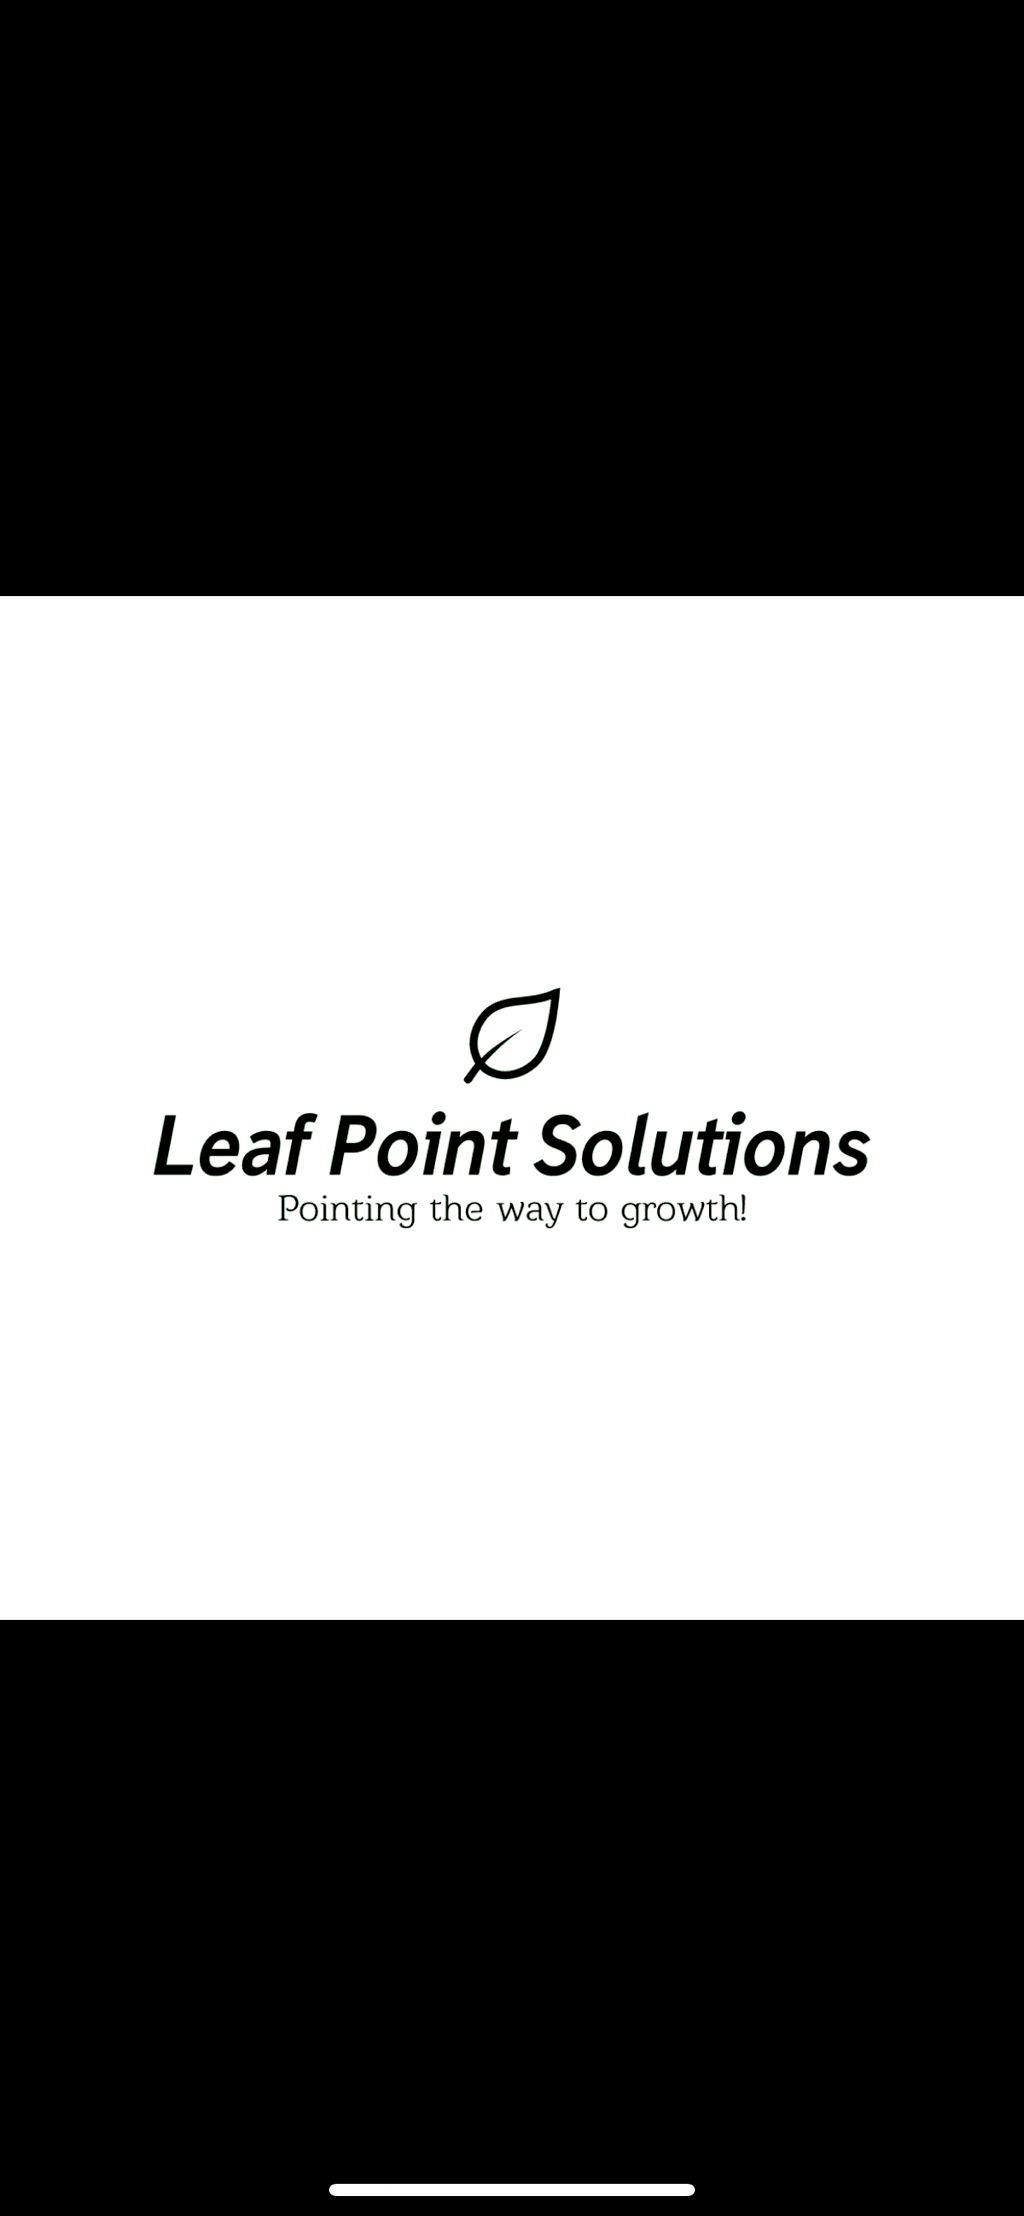 Leaf Point Solutions, Inc